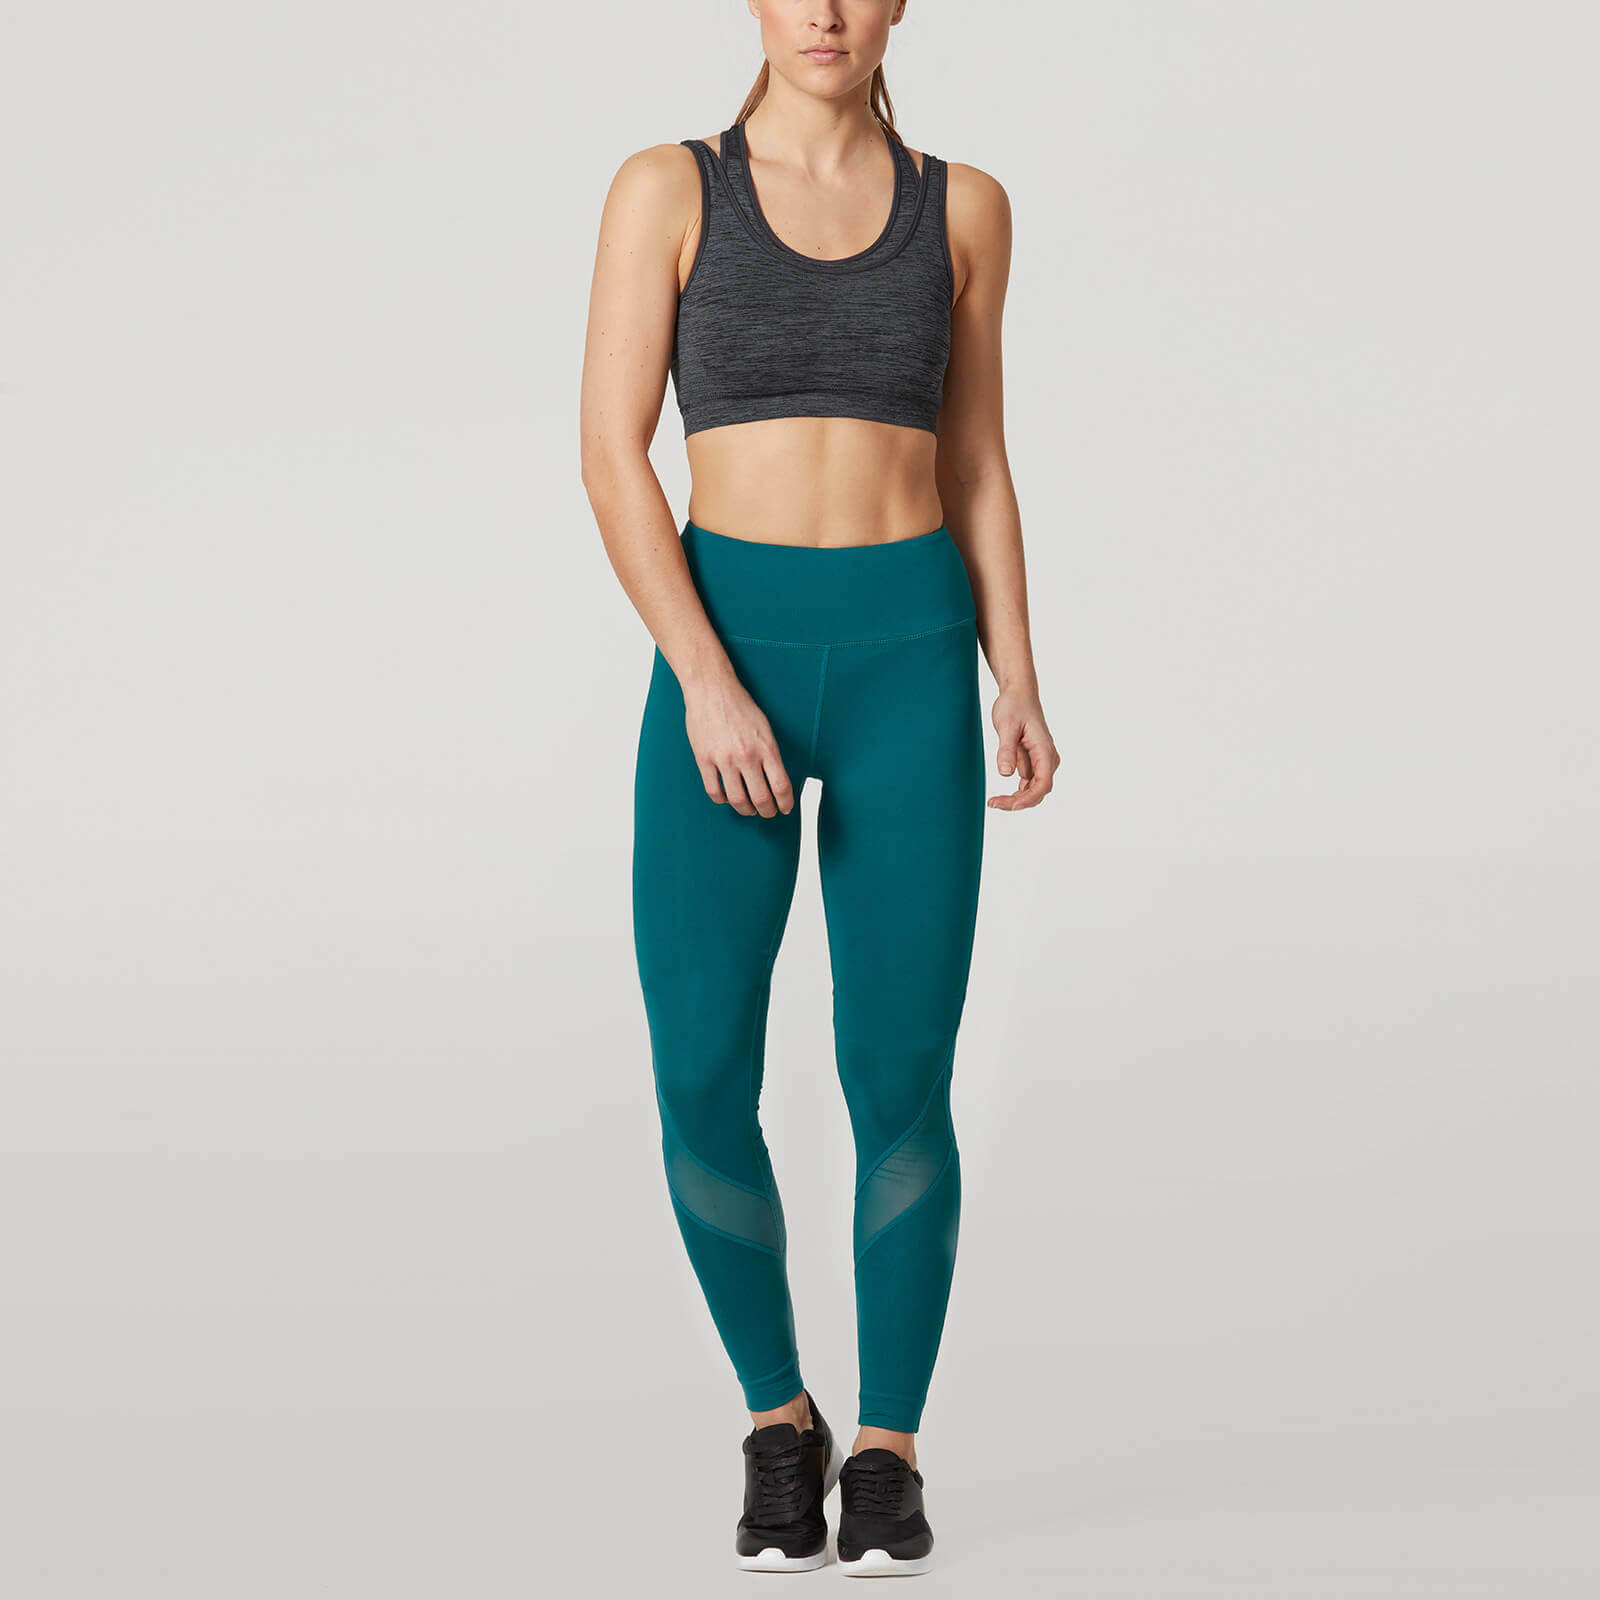 MyProtein CORE Damen Damen CORE Leggings Türkis Leggins My Protein lang long teal ea9d89